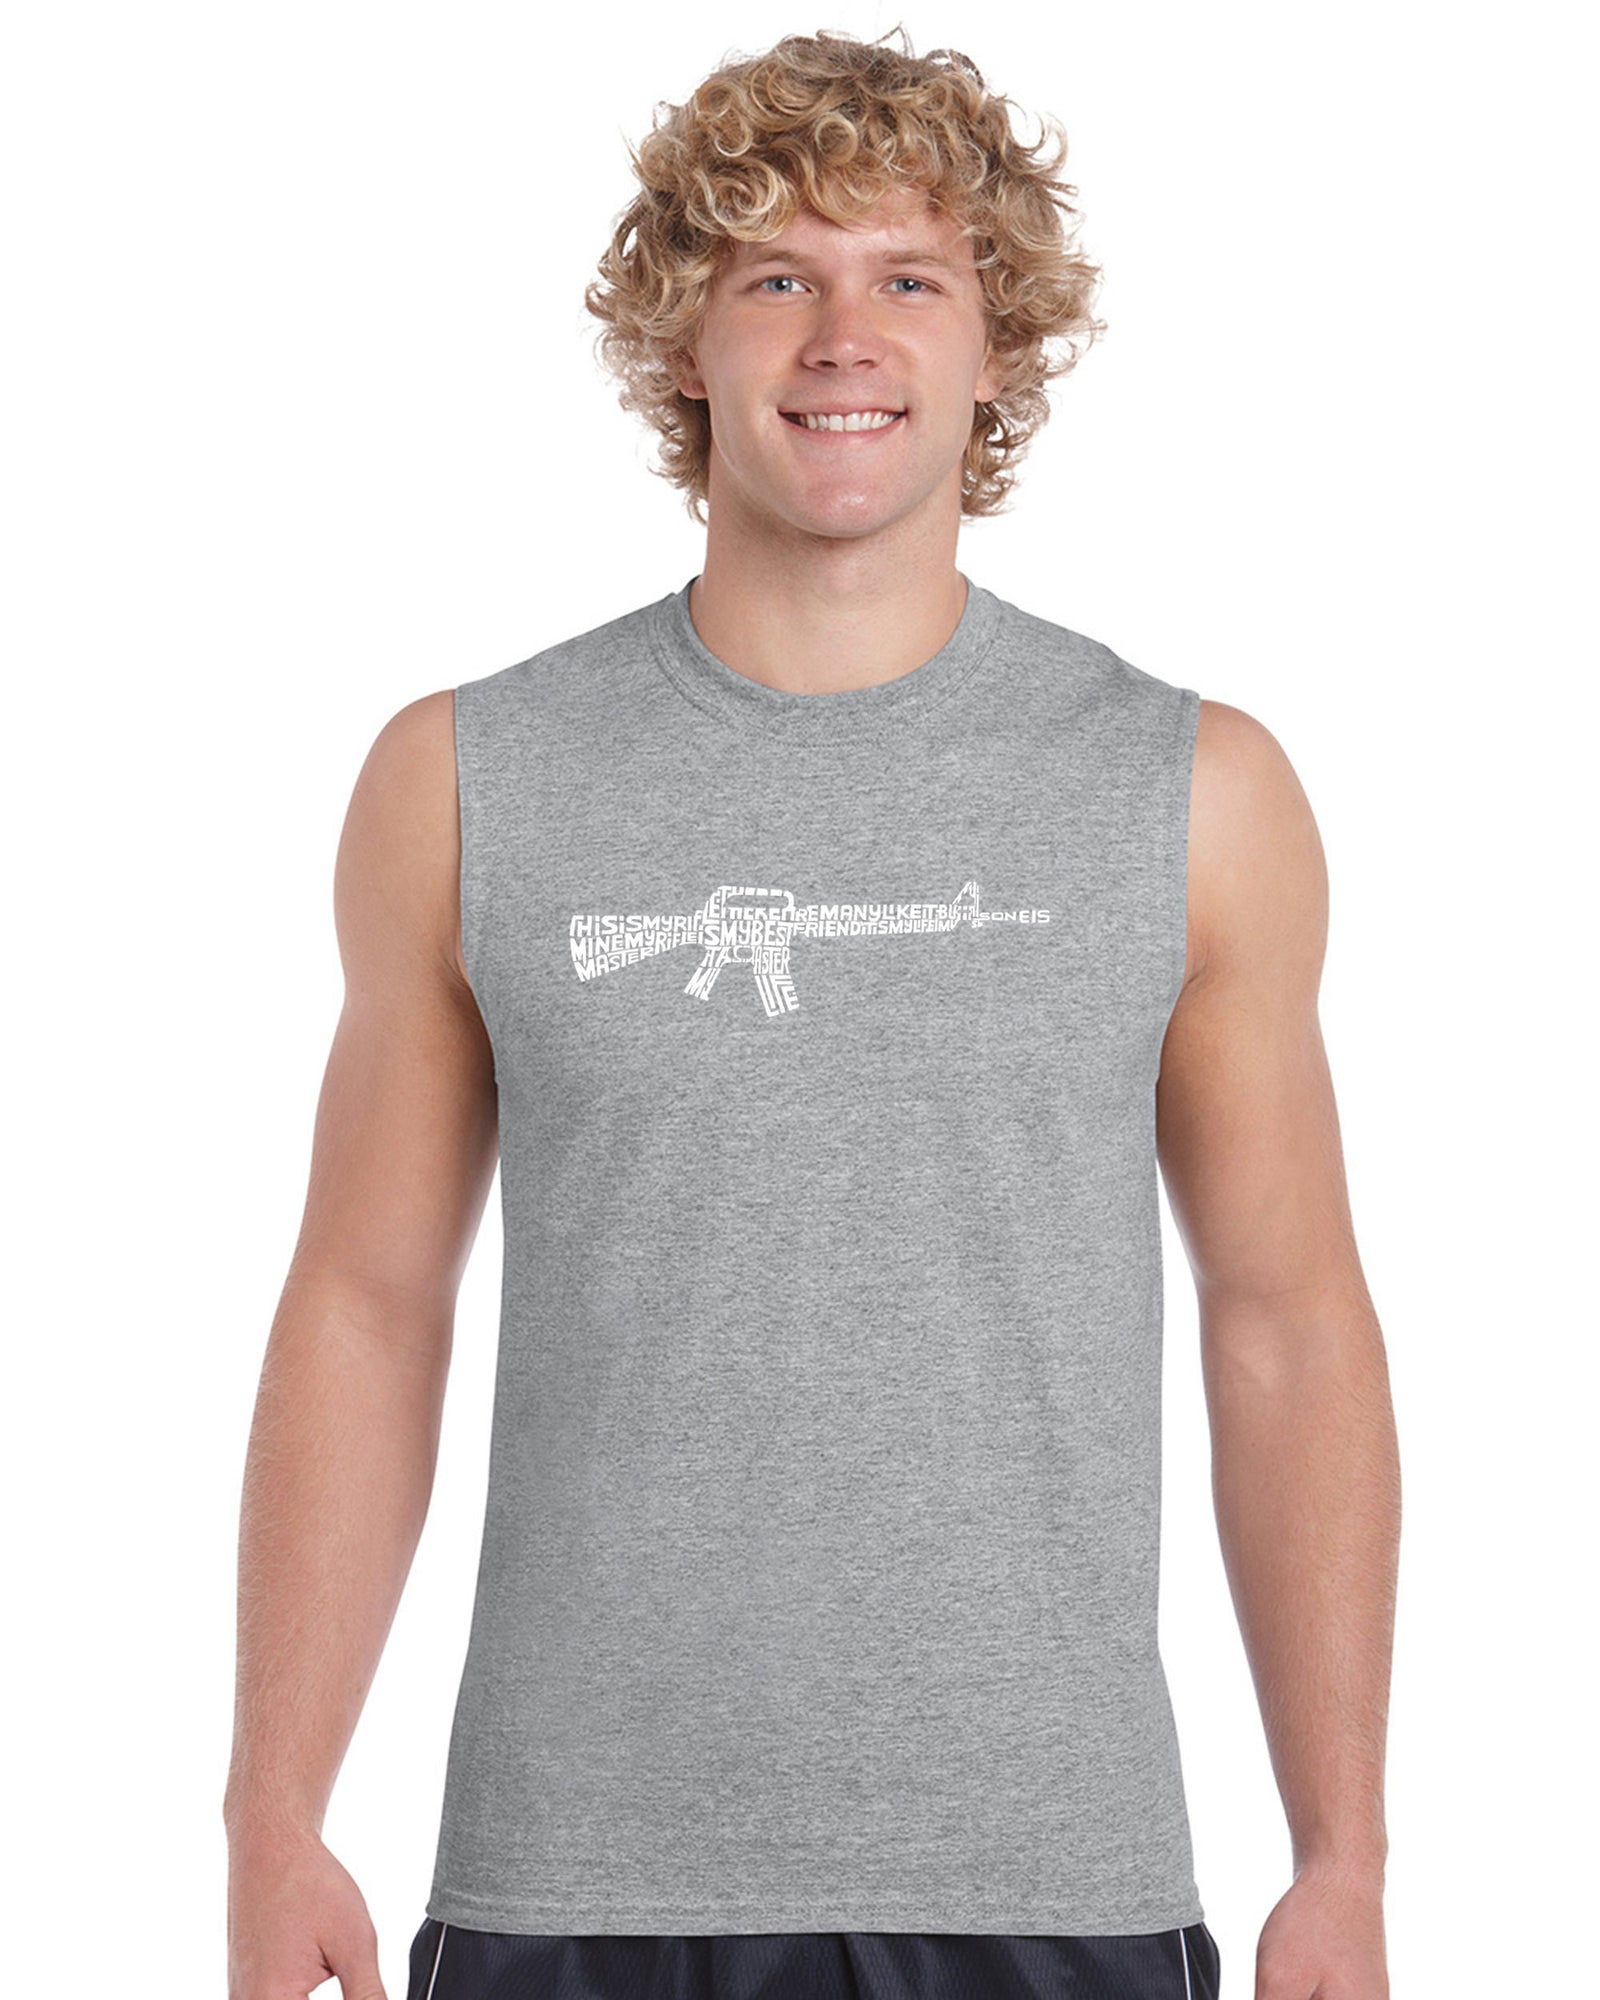 Men's Sleeveless T-shirt - RIFLEMANS CREED